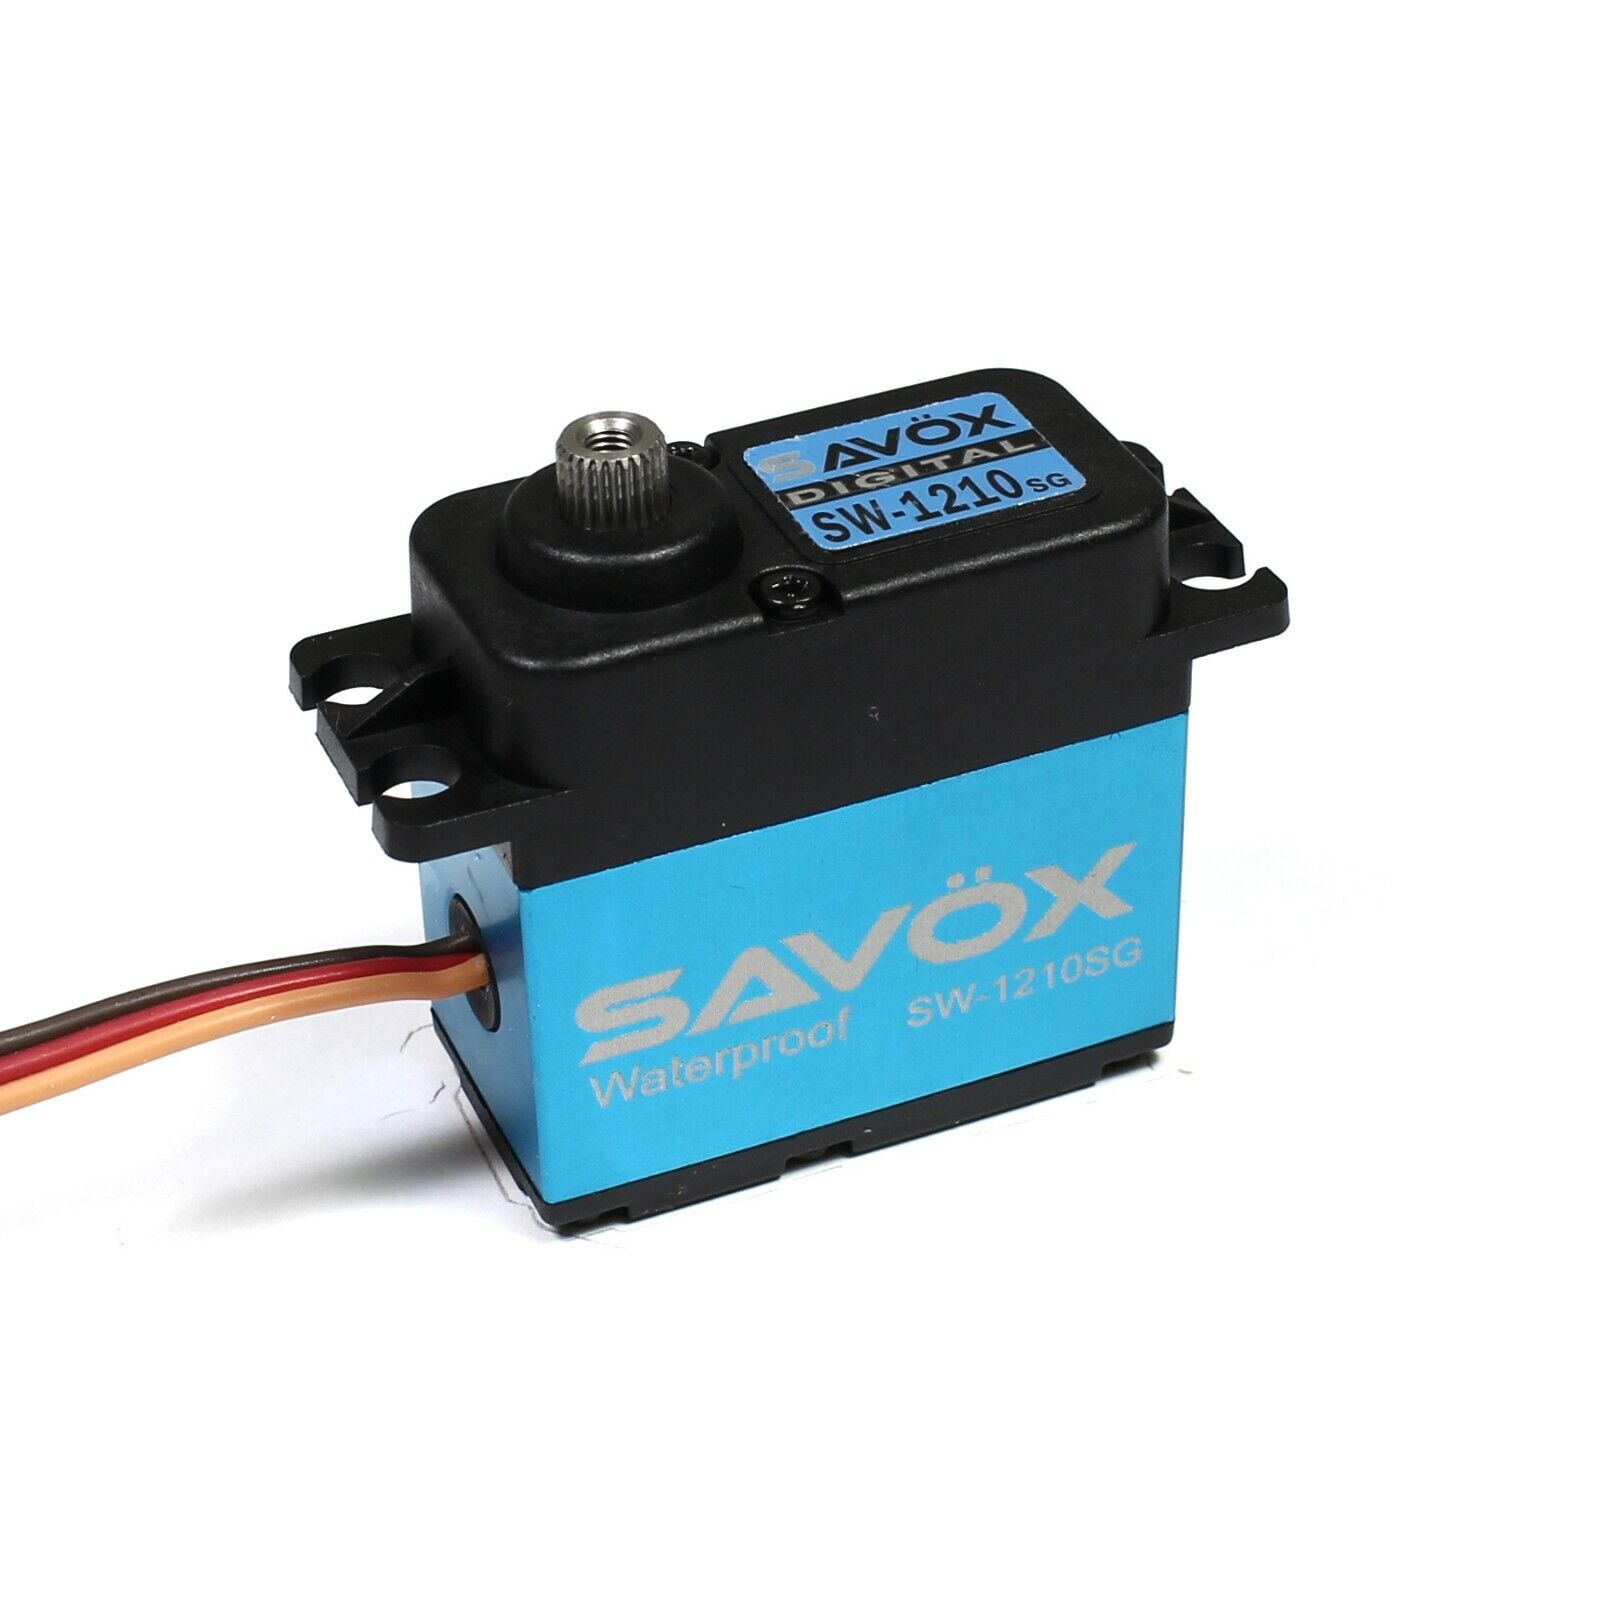 Savox SW-1210SG Impermeable Digital Servo Coreless Acero Gear Coche Crawler deriva